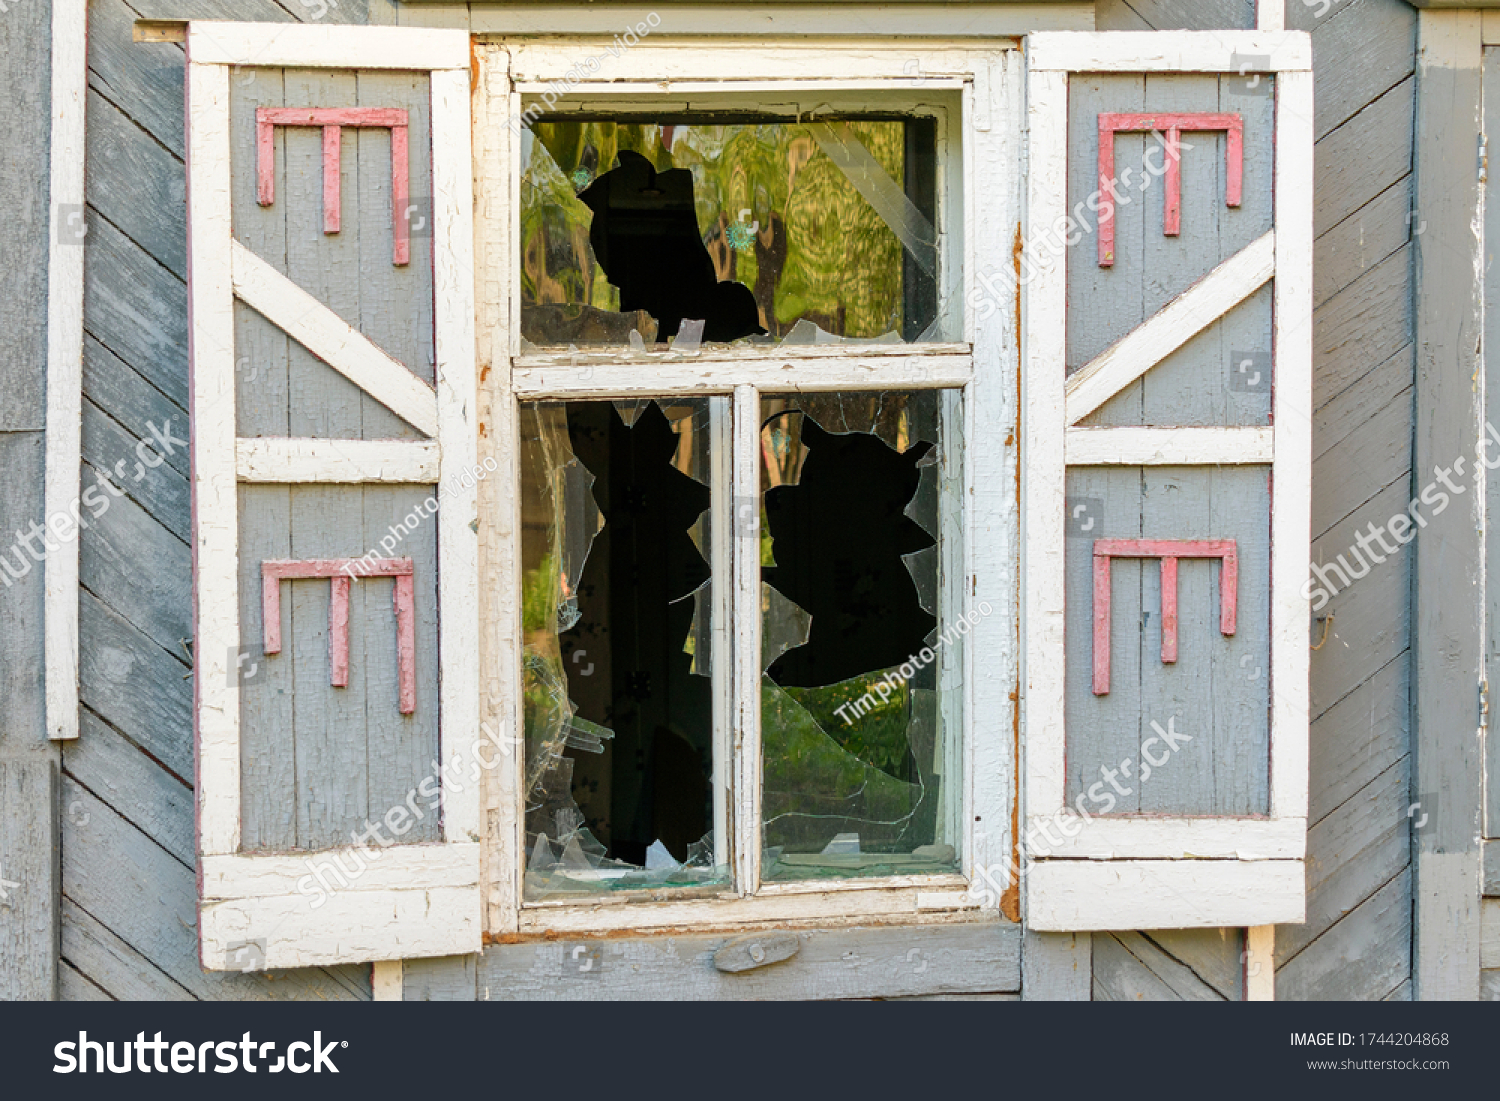 stock-photo-broken-window-of-an-old-wood